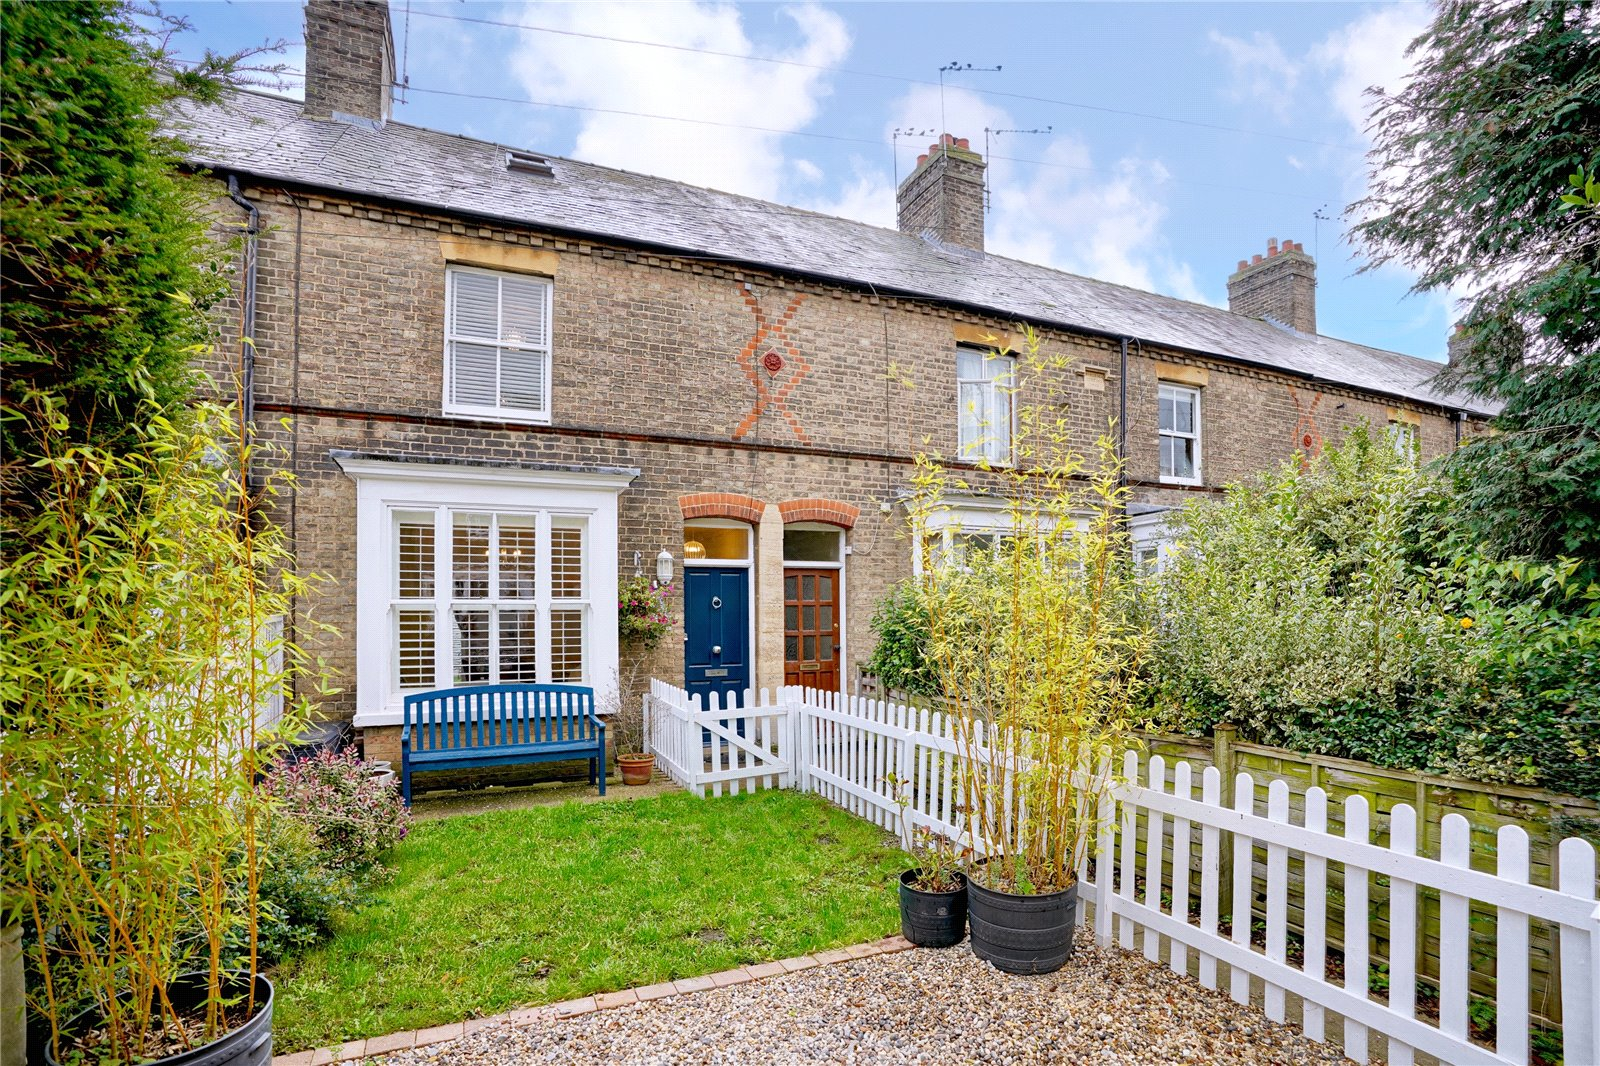 3 bed house for sale in St Ives, PE27 5PH, PE27